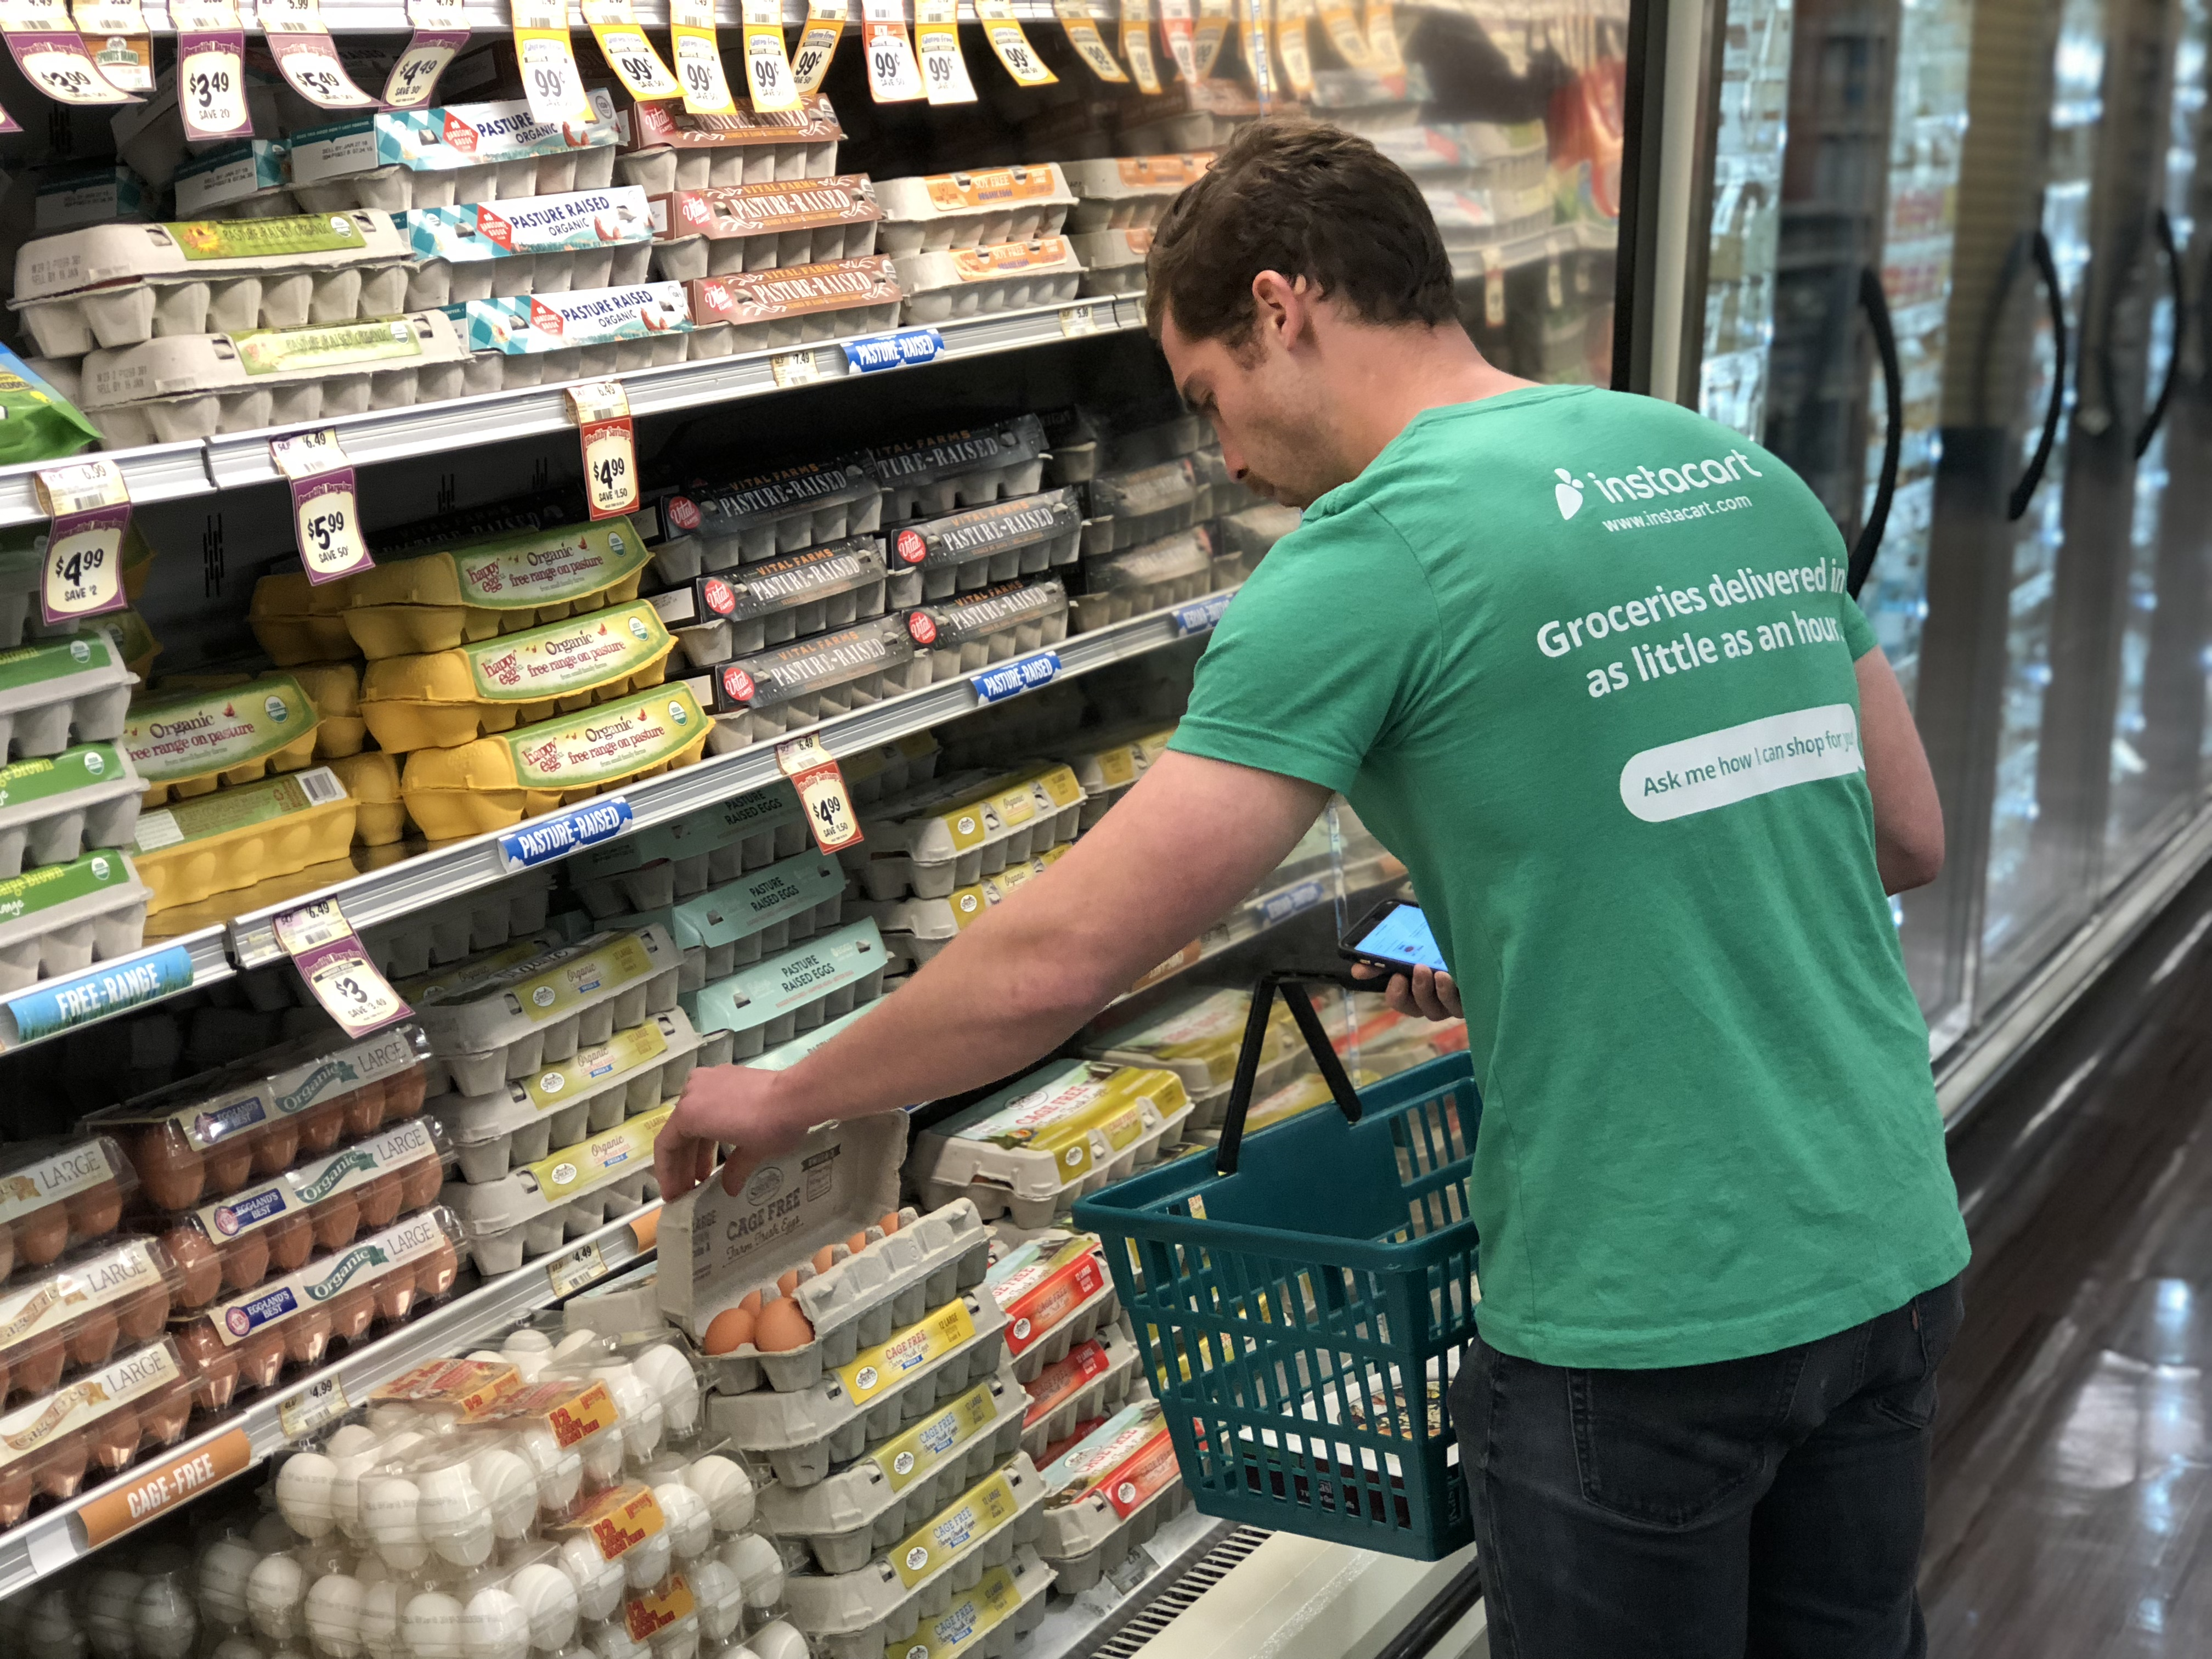 Instacart expands alcohol delivery to 14 states